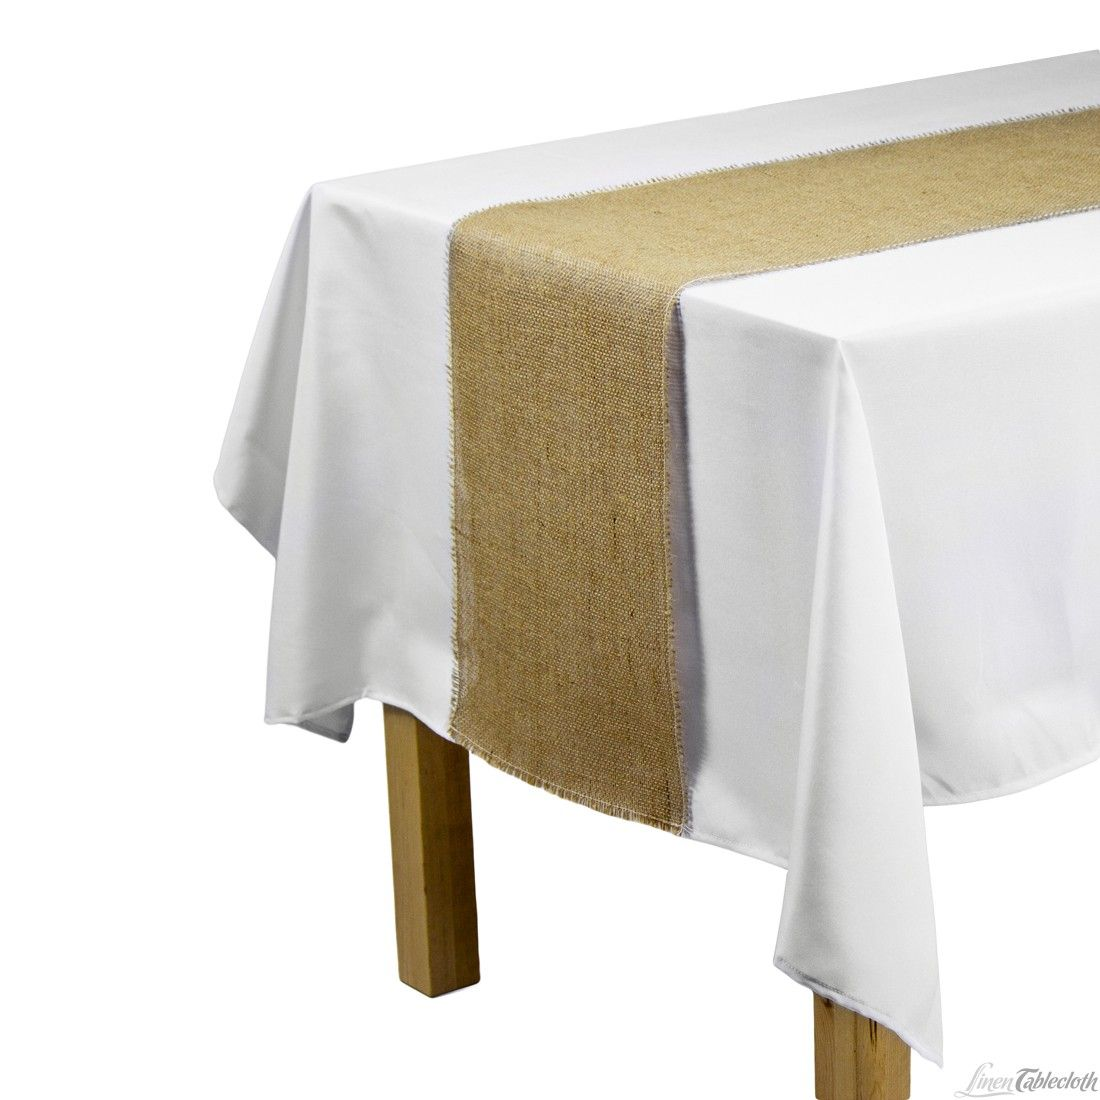 Amazing Buy 12.5 X 120 Inch Jute Table Runner With Fringe Edge At LinenTablecloth!  These Burlap